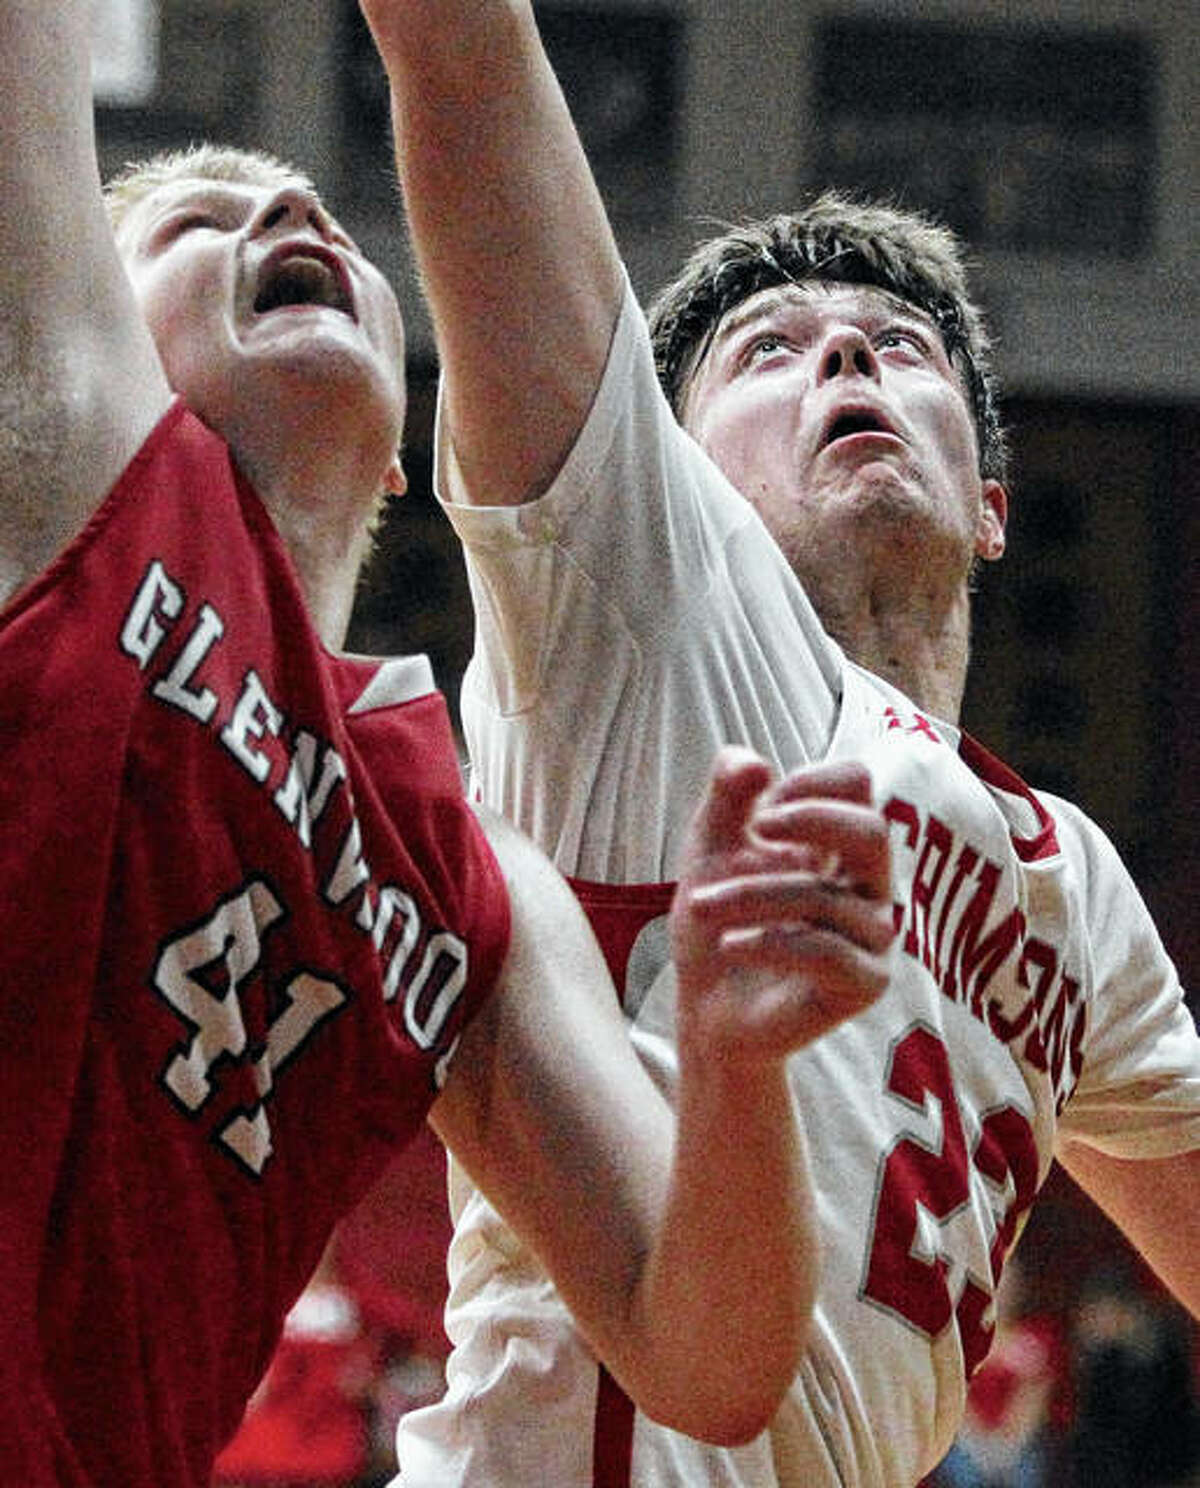 Jacksonville's Will Rohlk (right) goes up for a rebound during Tuesday's game against Chatham.